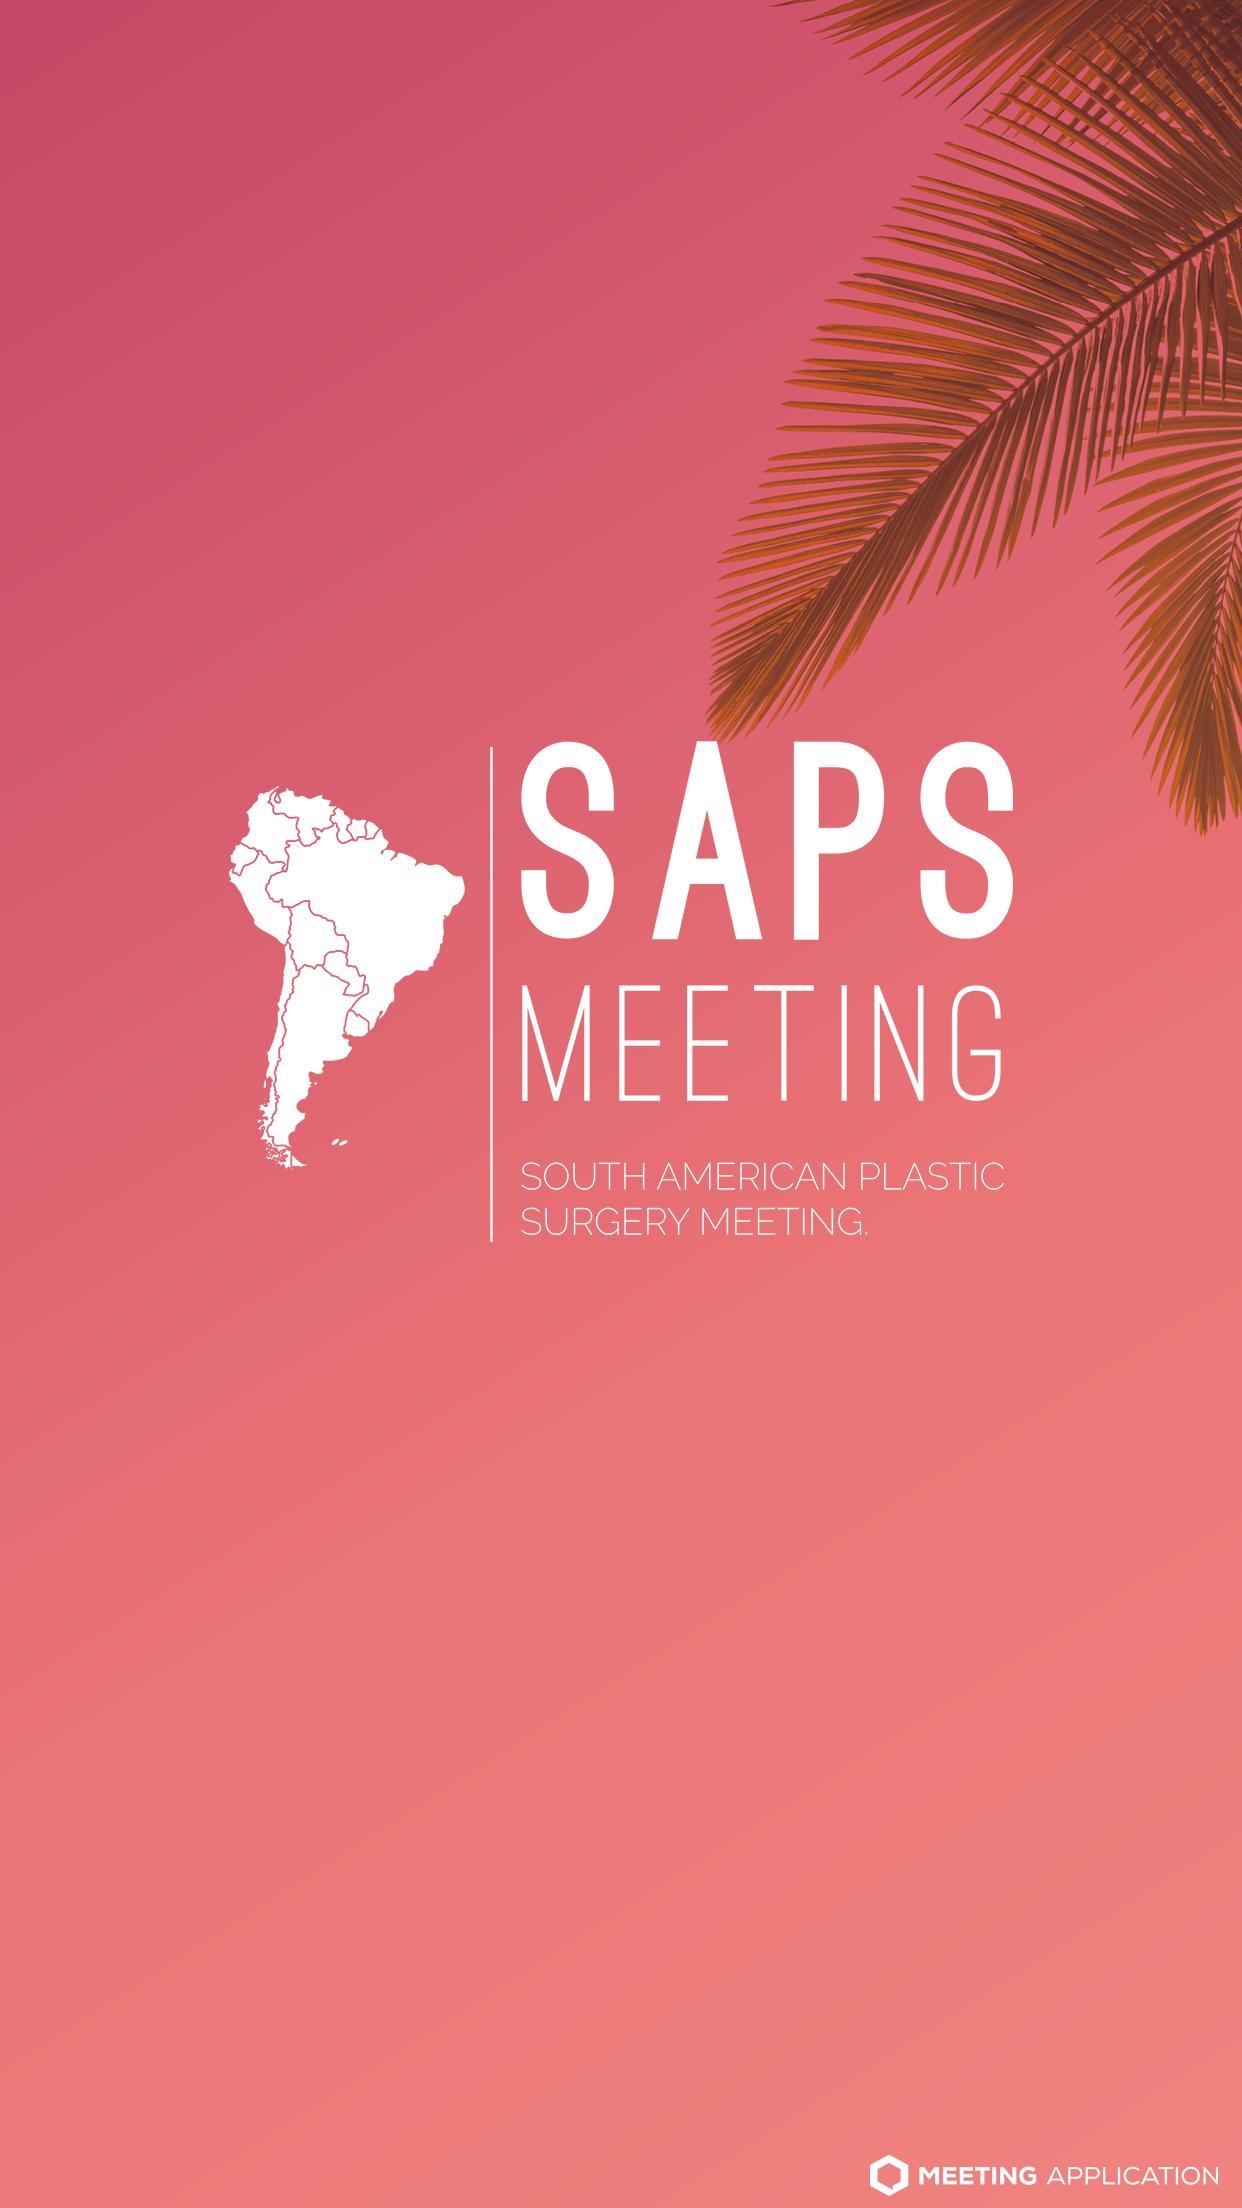 SAPS MEETING 2019 for Android - APK Download